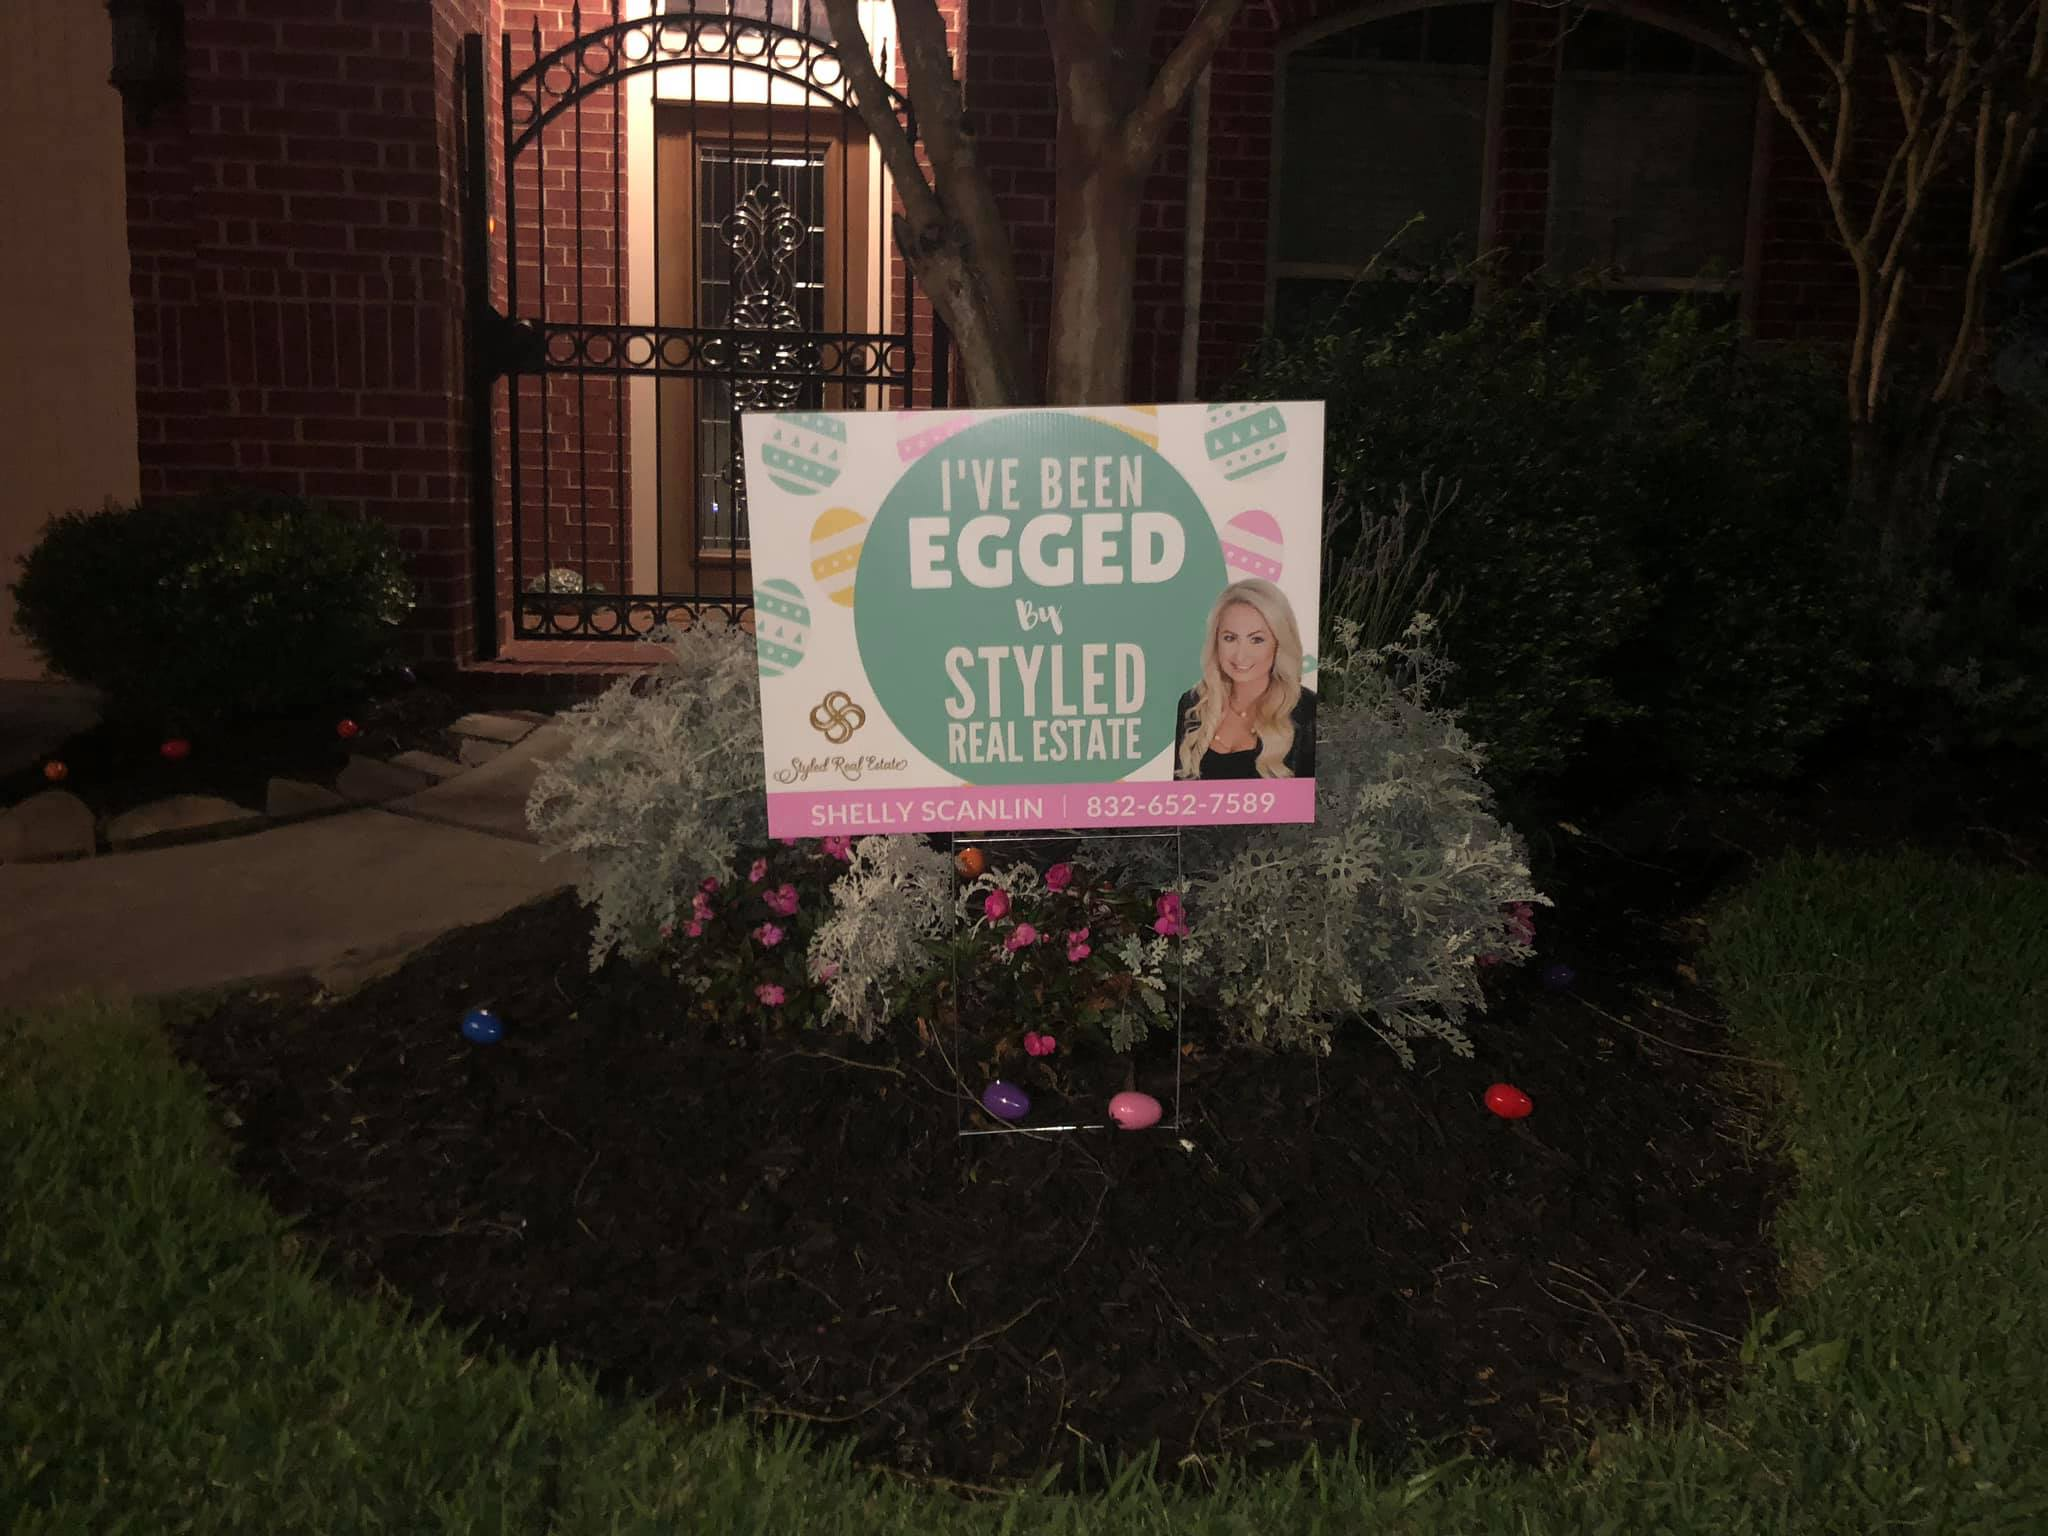 Egg My Yard!